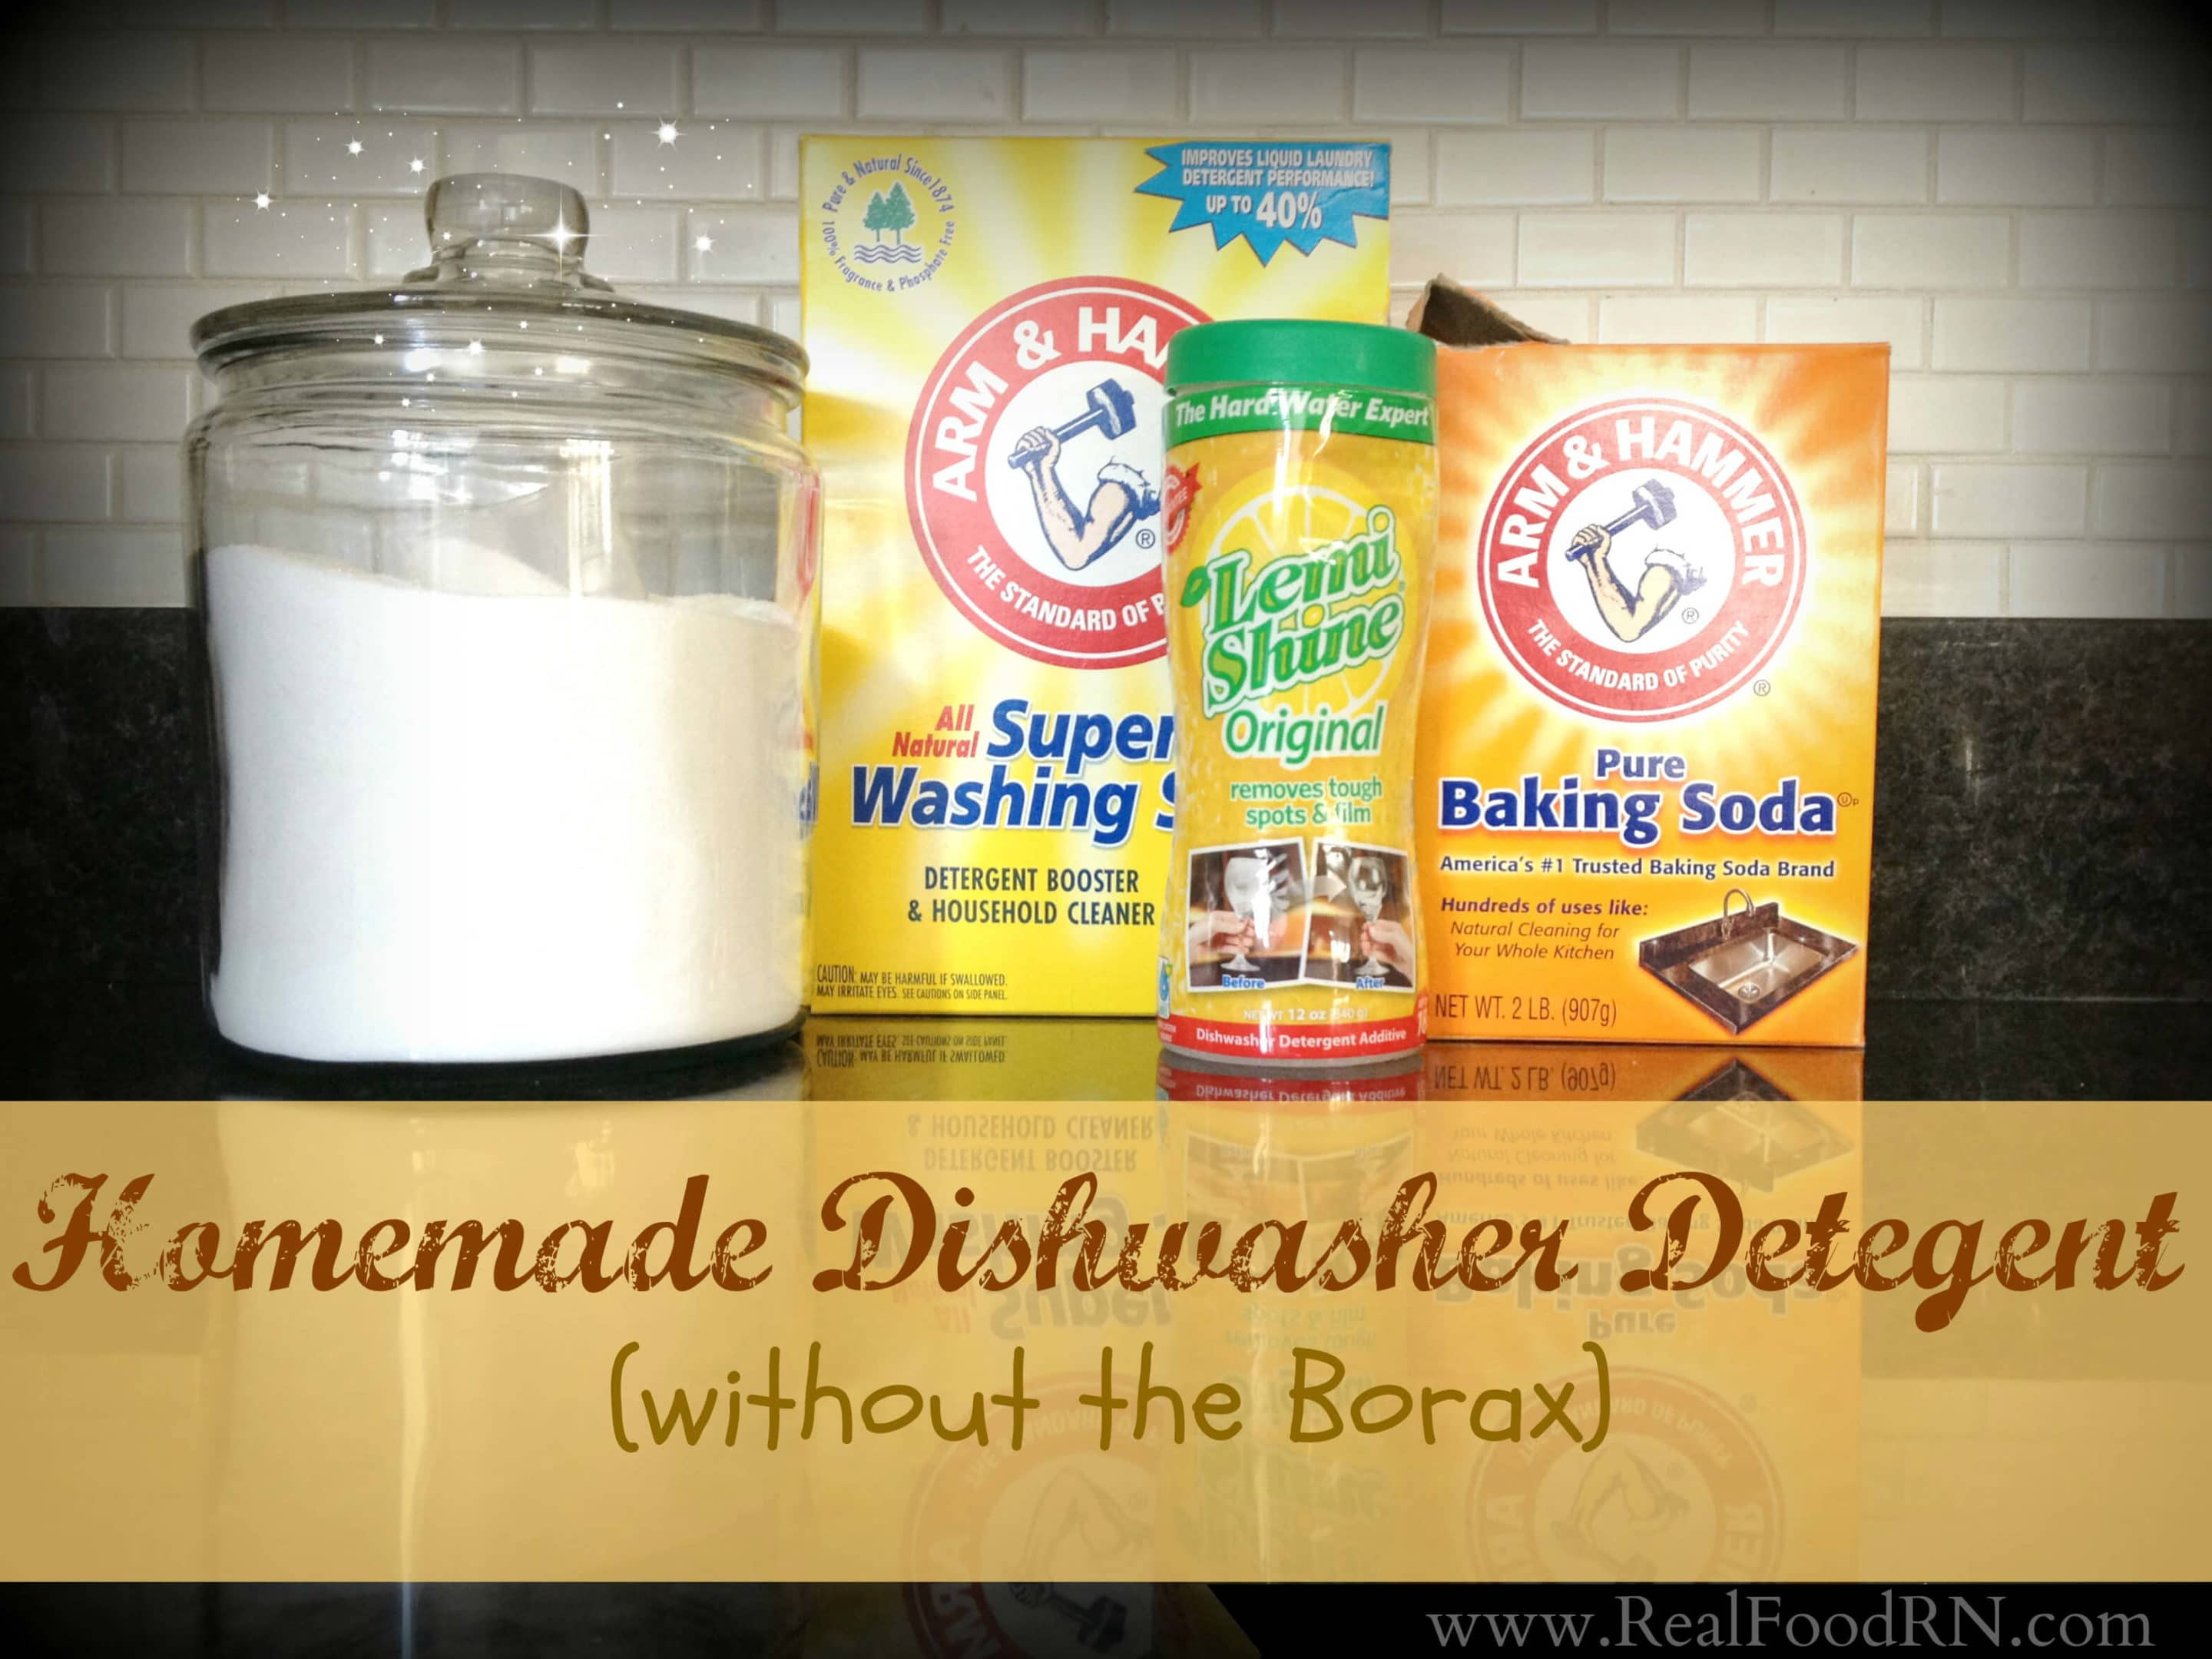 Homemade dishwasher detergent without borax